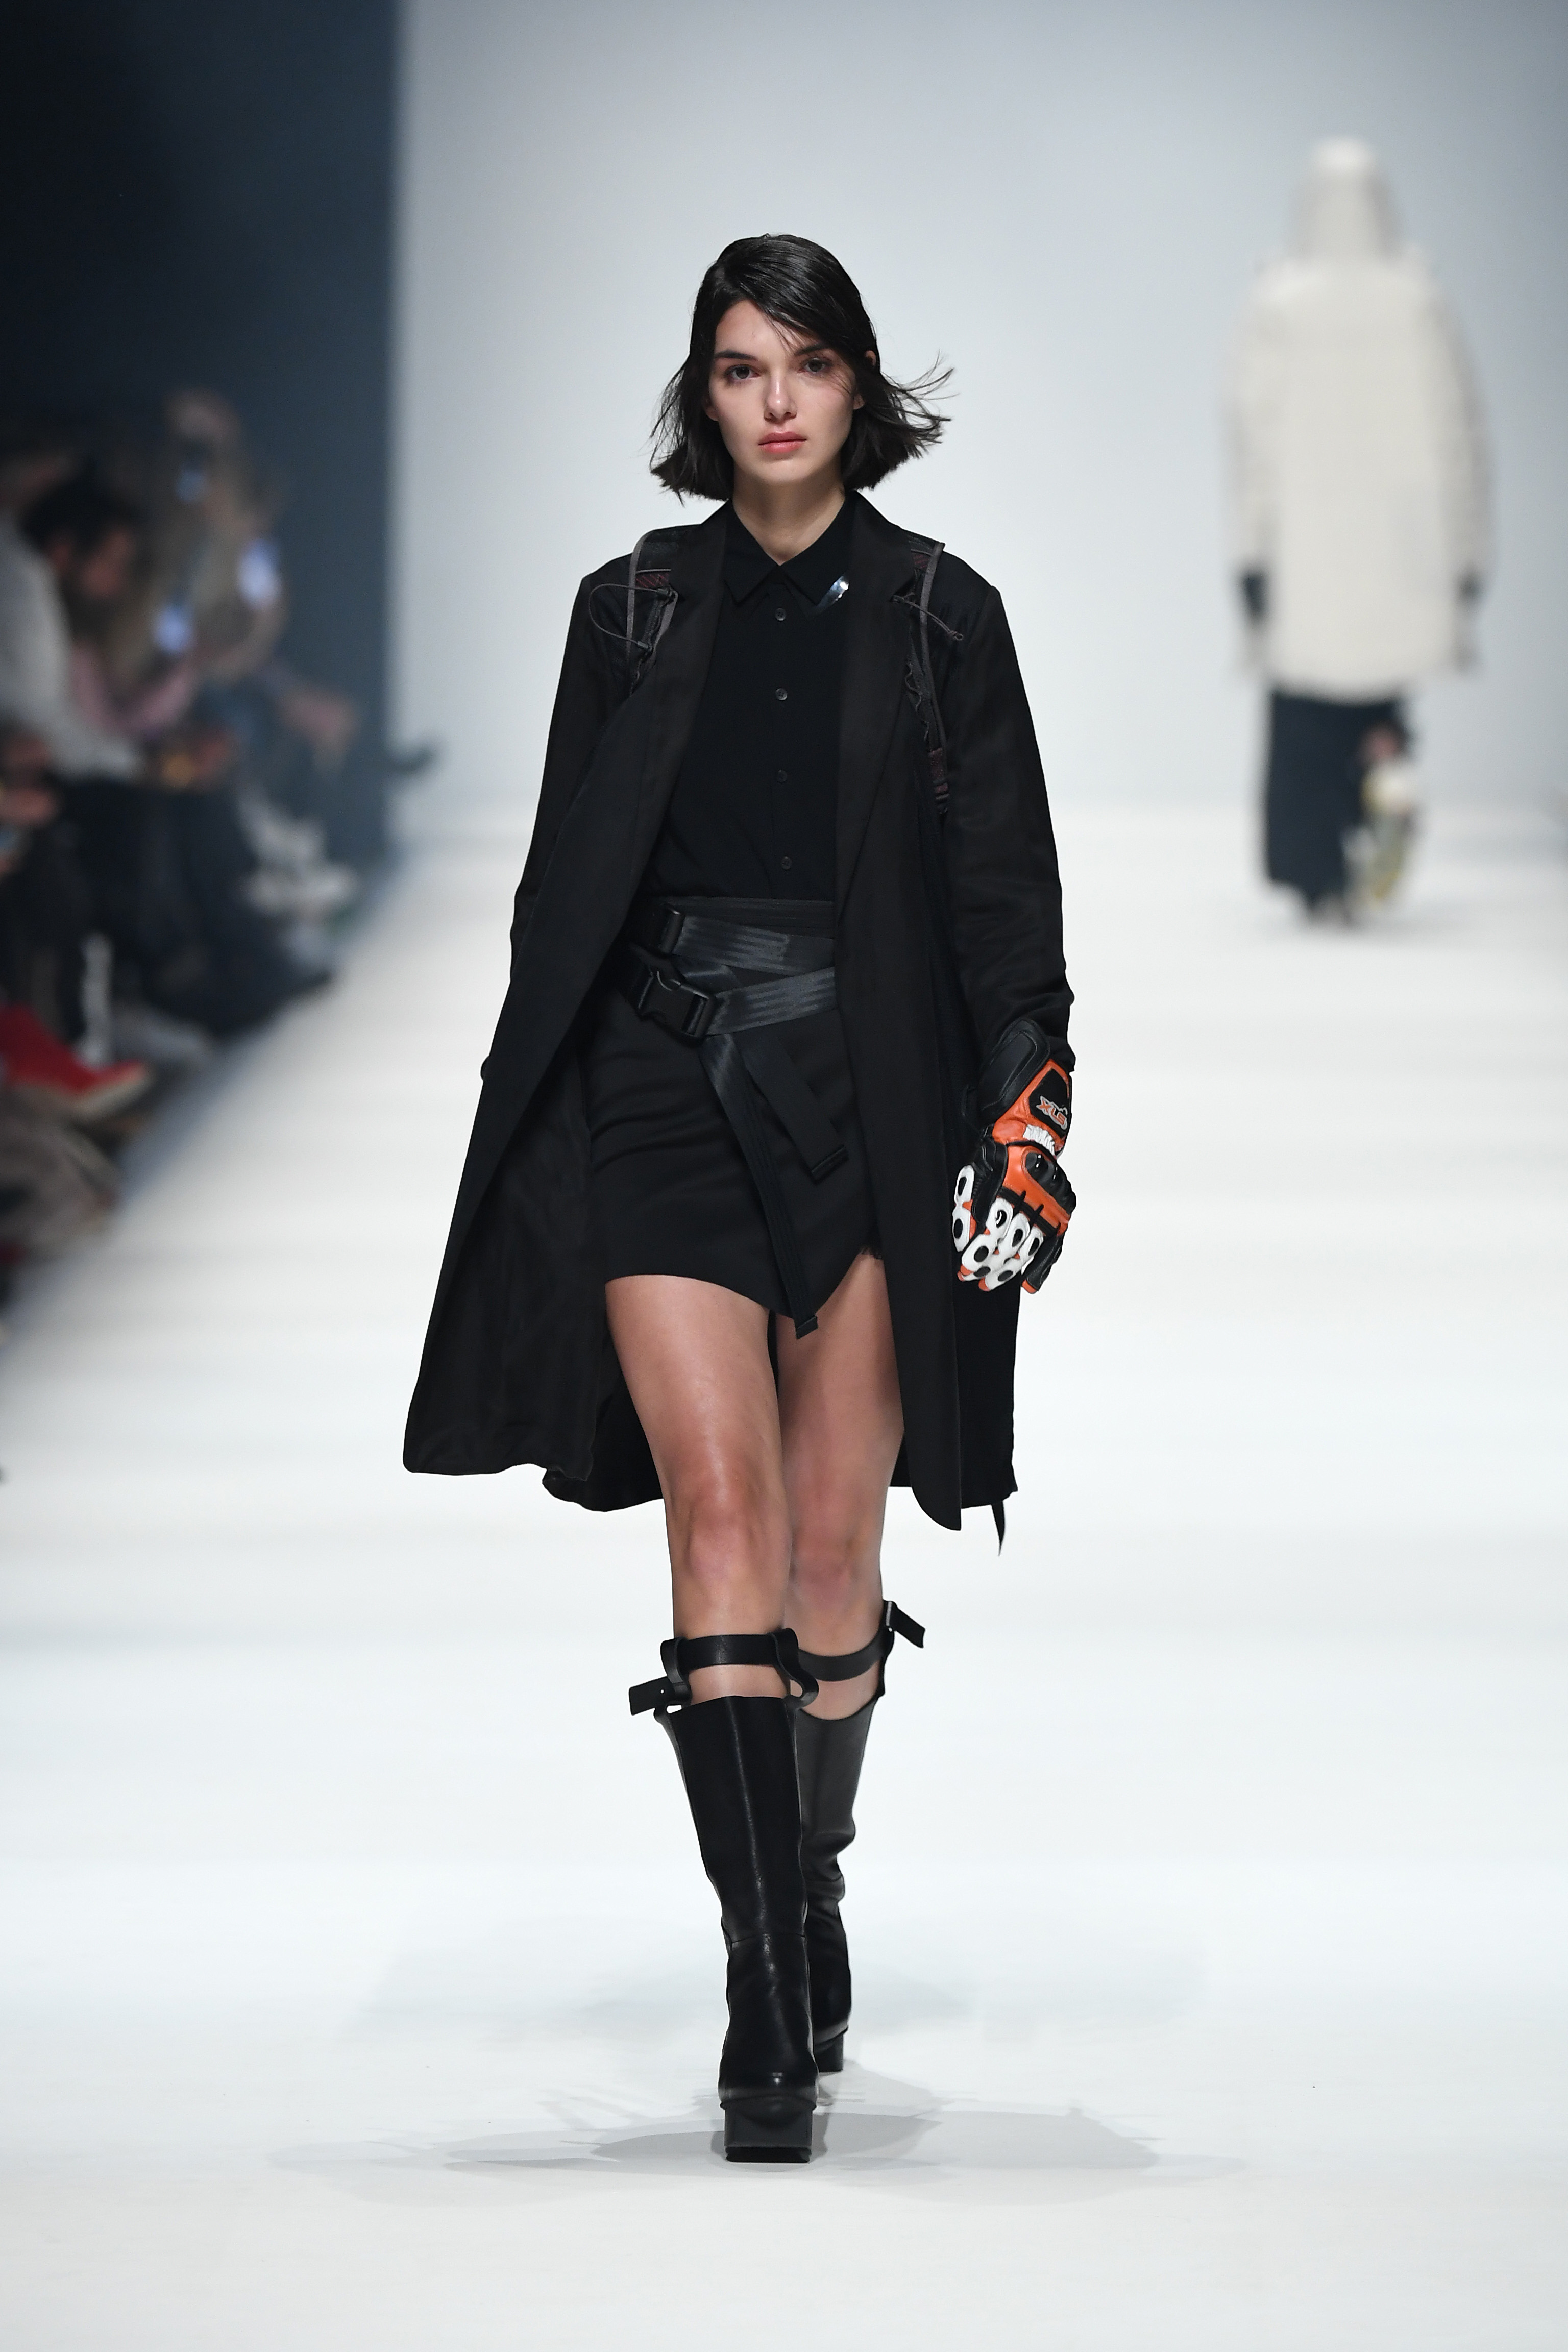 BERLIN, GERMANY - JANUARY 14: A model wearing a coat by People Berlin, blouse by Esther Perbandt, backpack by Klaettermusen, skirt by Nakt, gloves by Biker-Zone and shoes by Trippen walks the runway at the Neonyt show during Berlin Fashion Week Autumn/Winter 2020 at Kraftwerk Mitte on January 14, 2020 in Berlin, Germany. (Photo by John Phillips/Getty Images for MBFW)